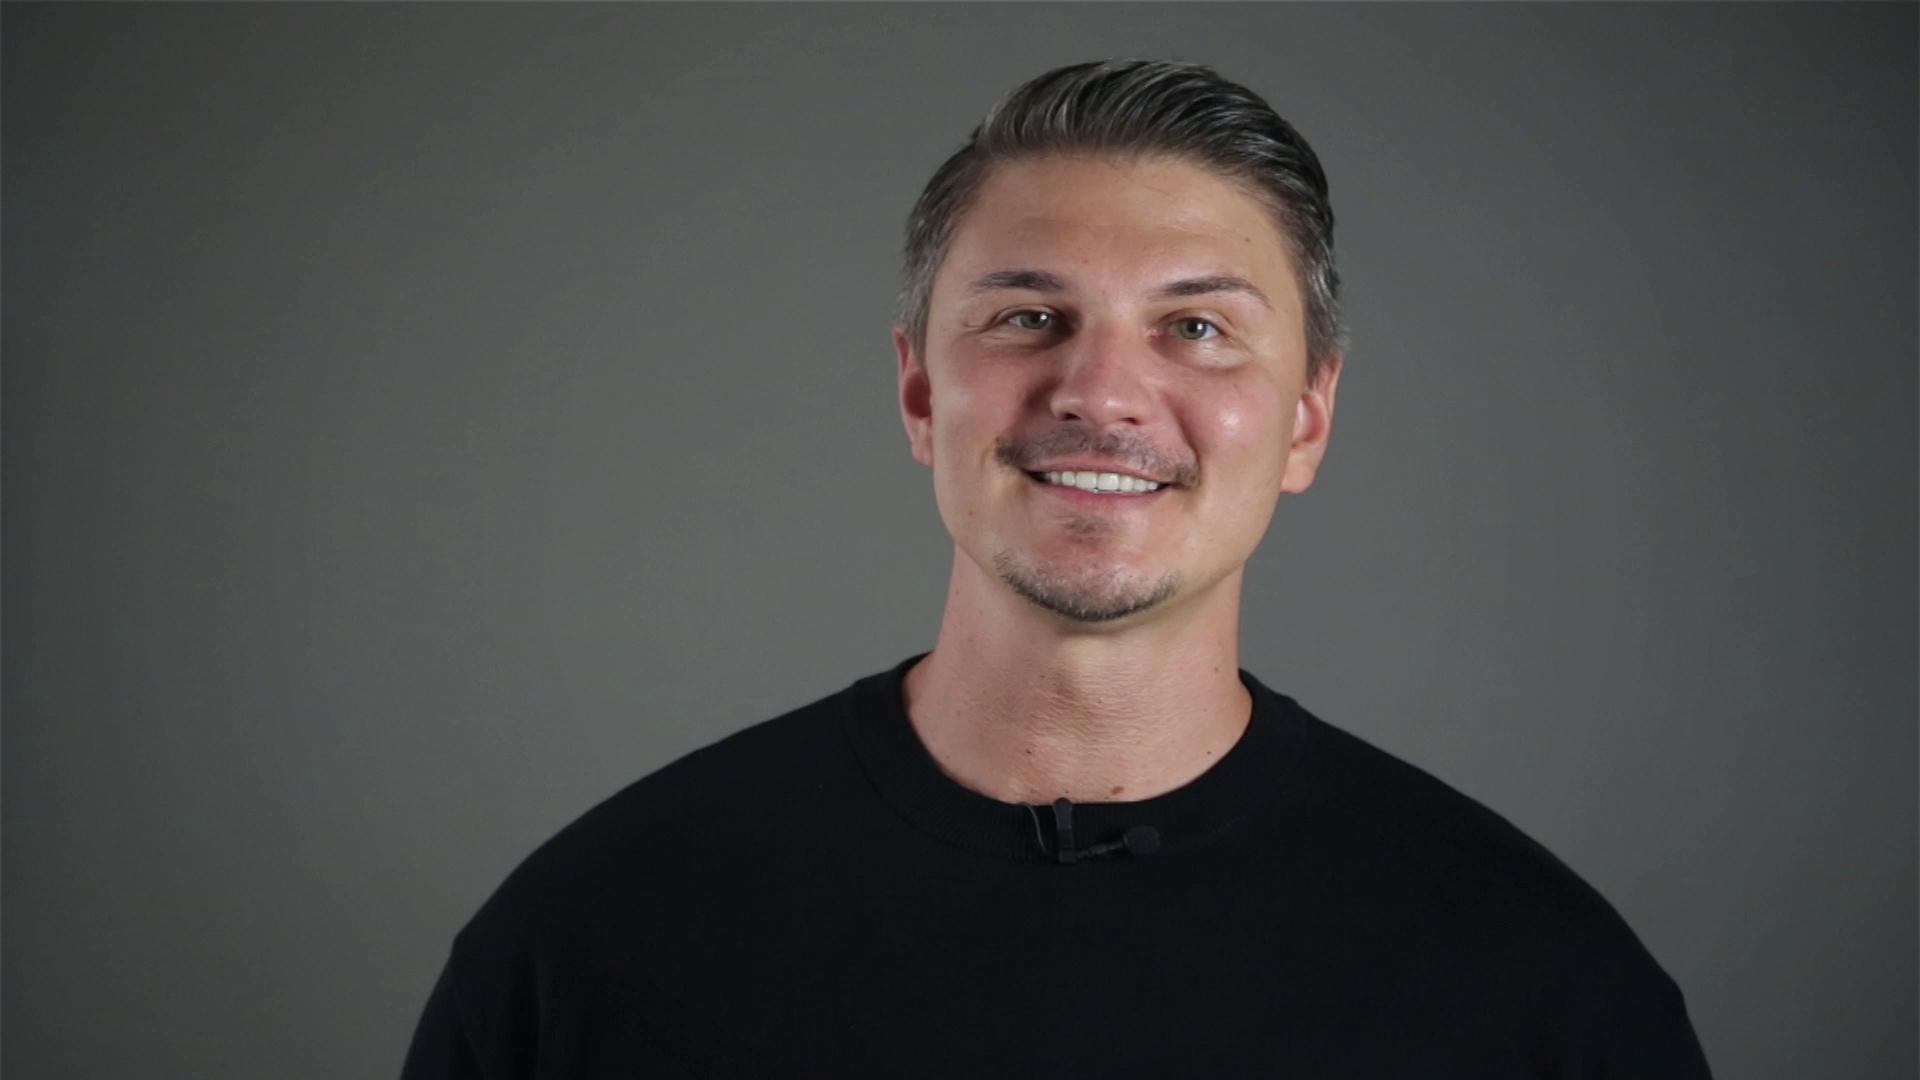 Image from a video of Pavlo Stroblja